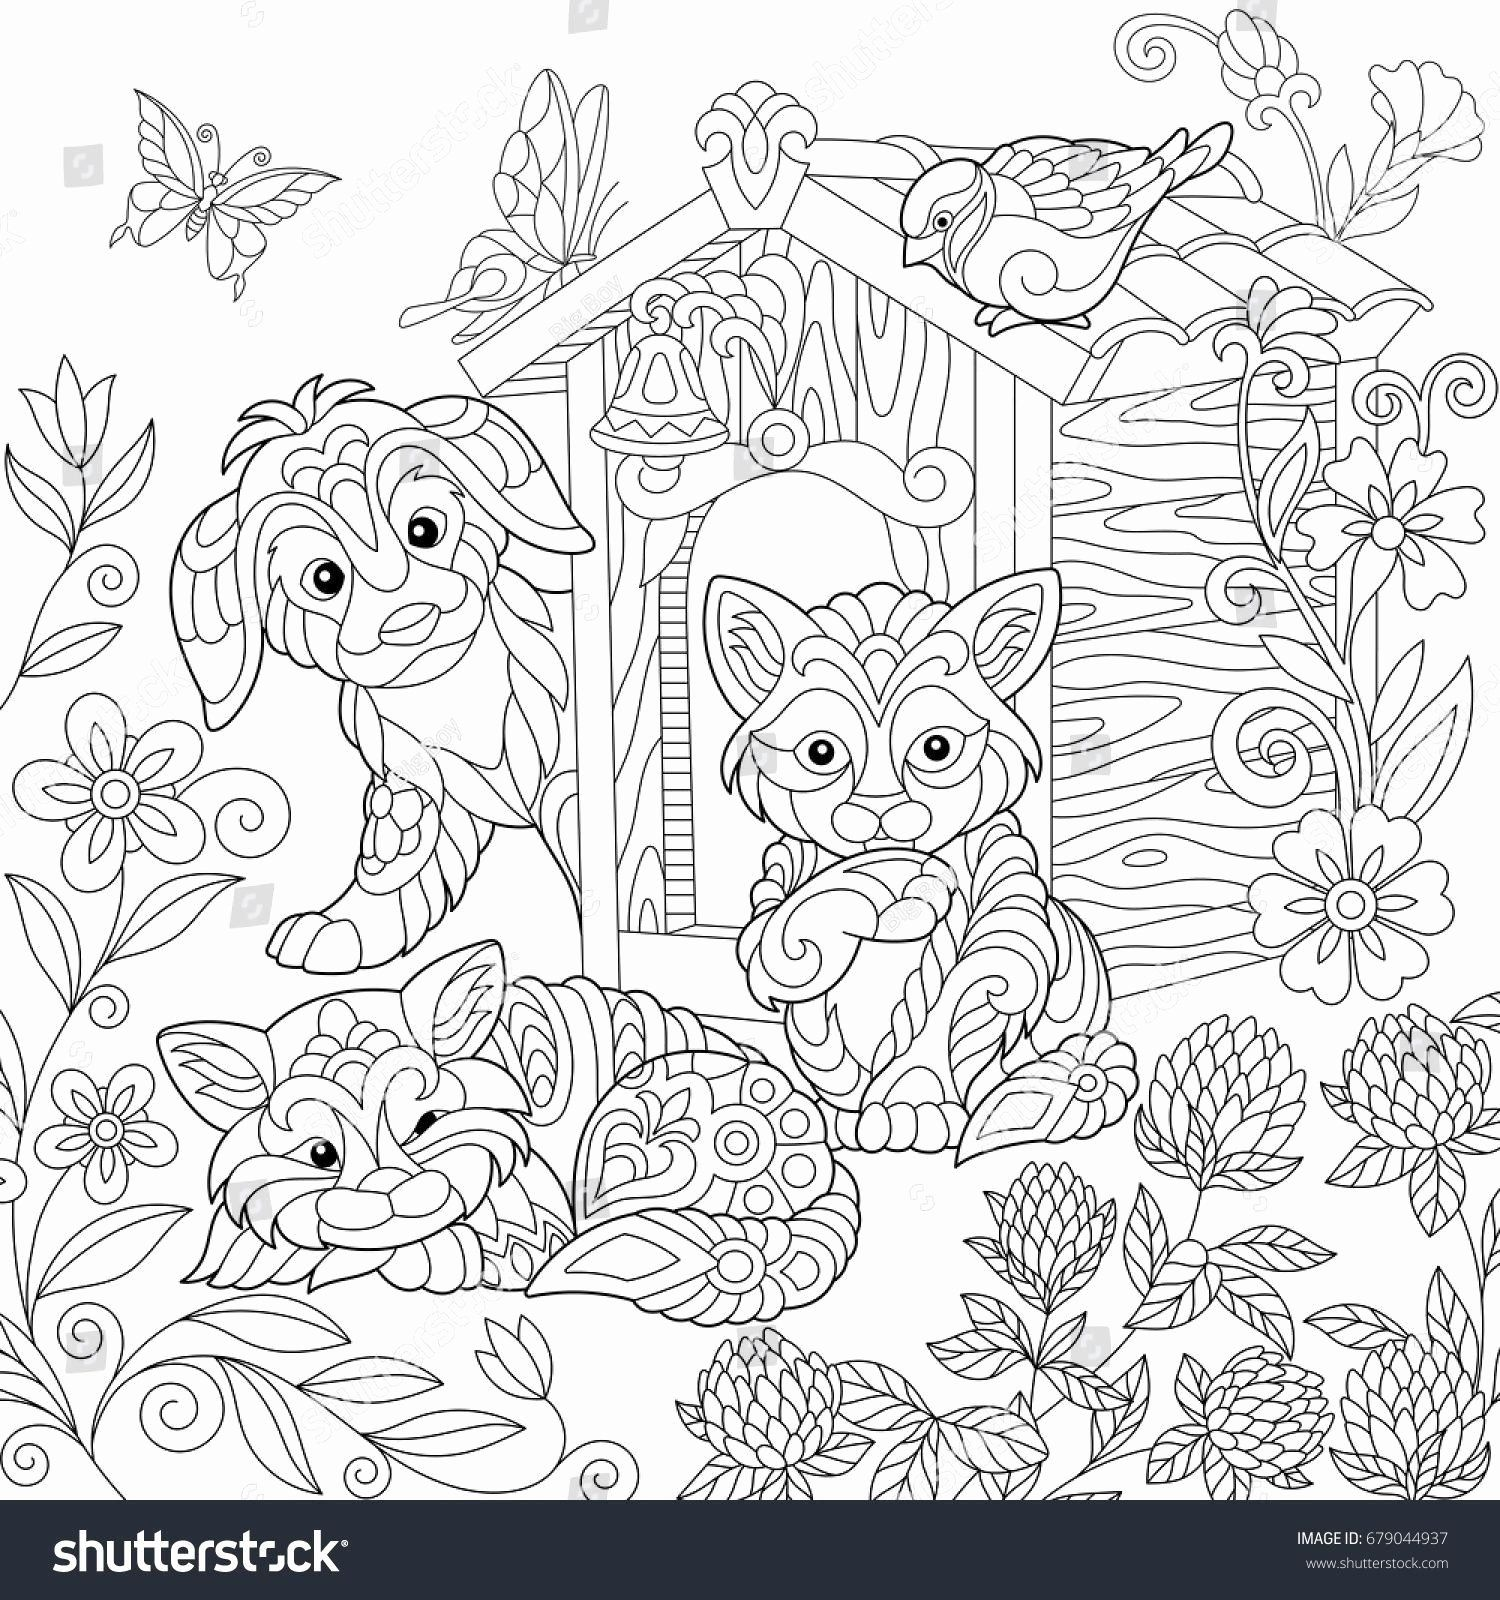 Printable Lion Coloring Pages Awesome Coloring Coloring